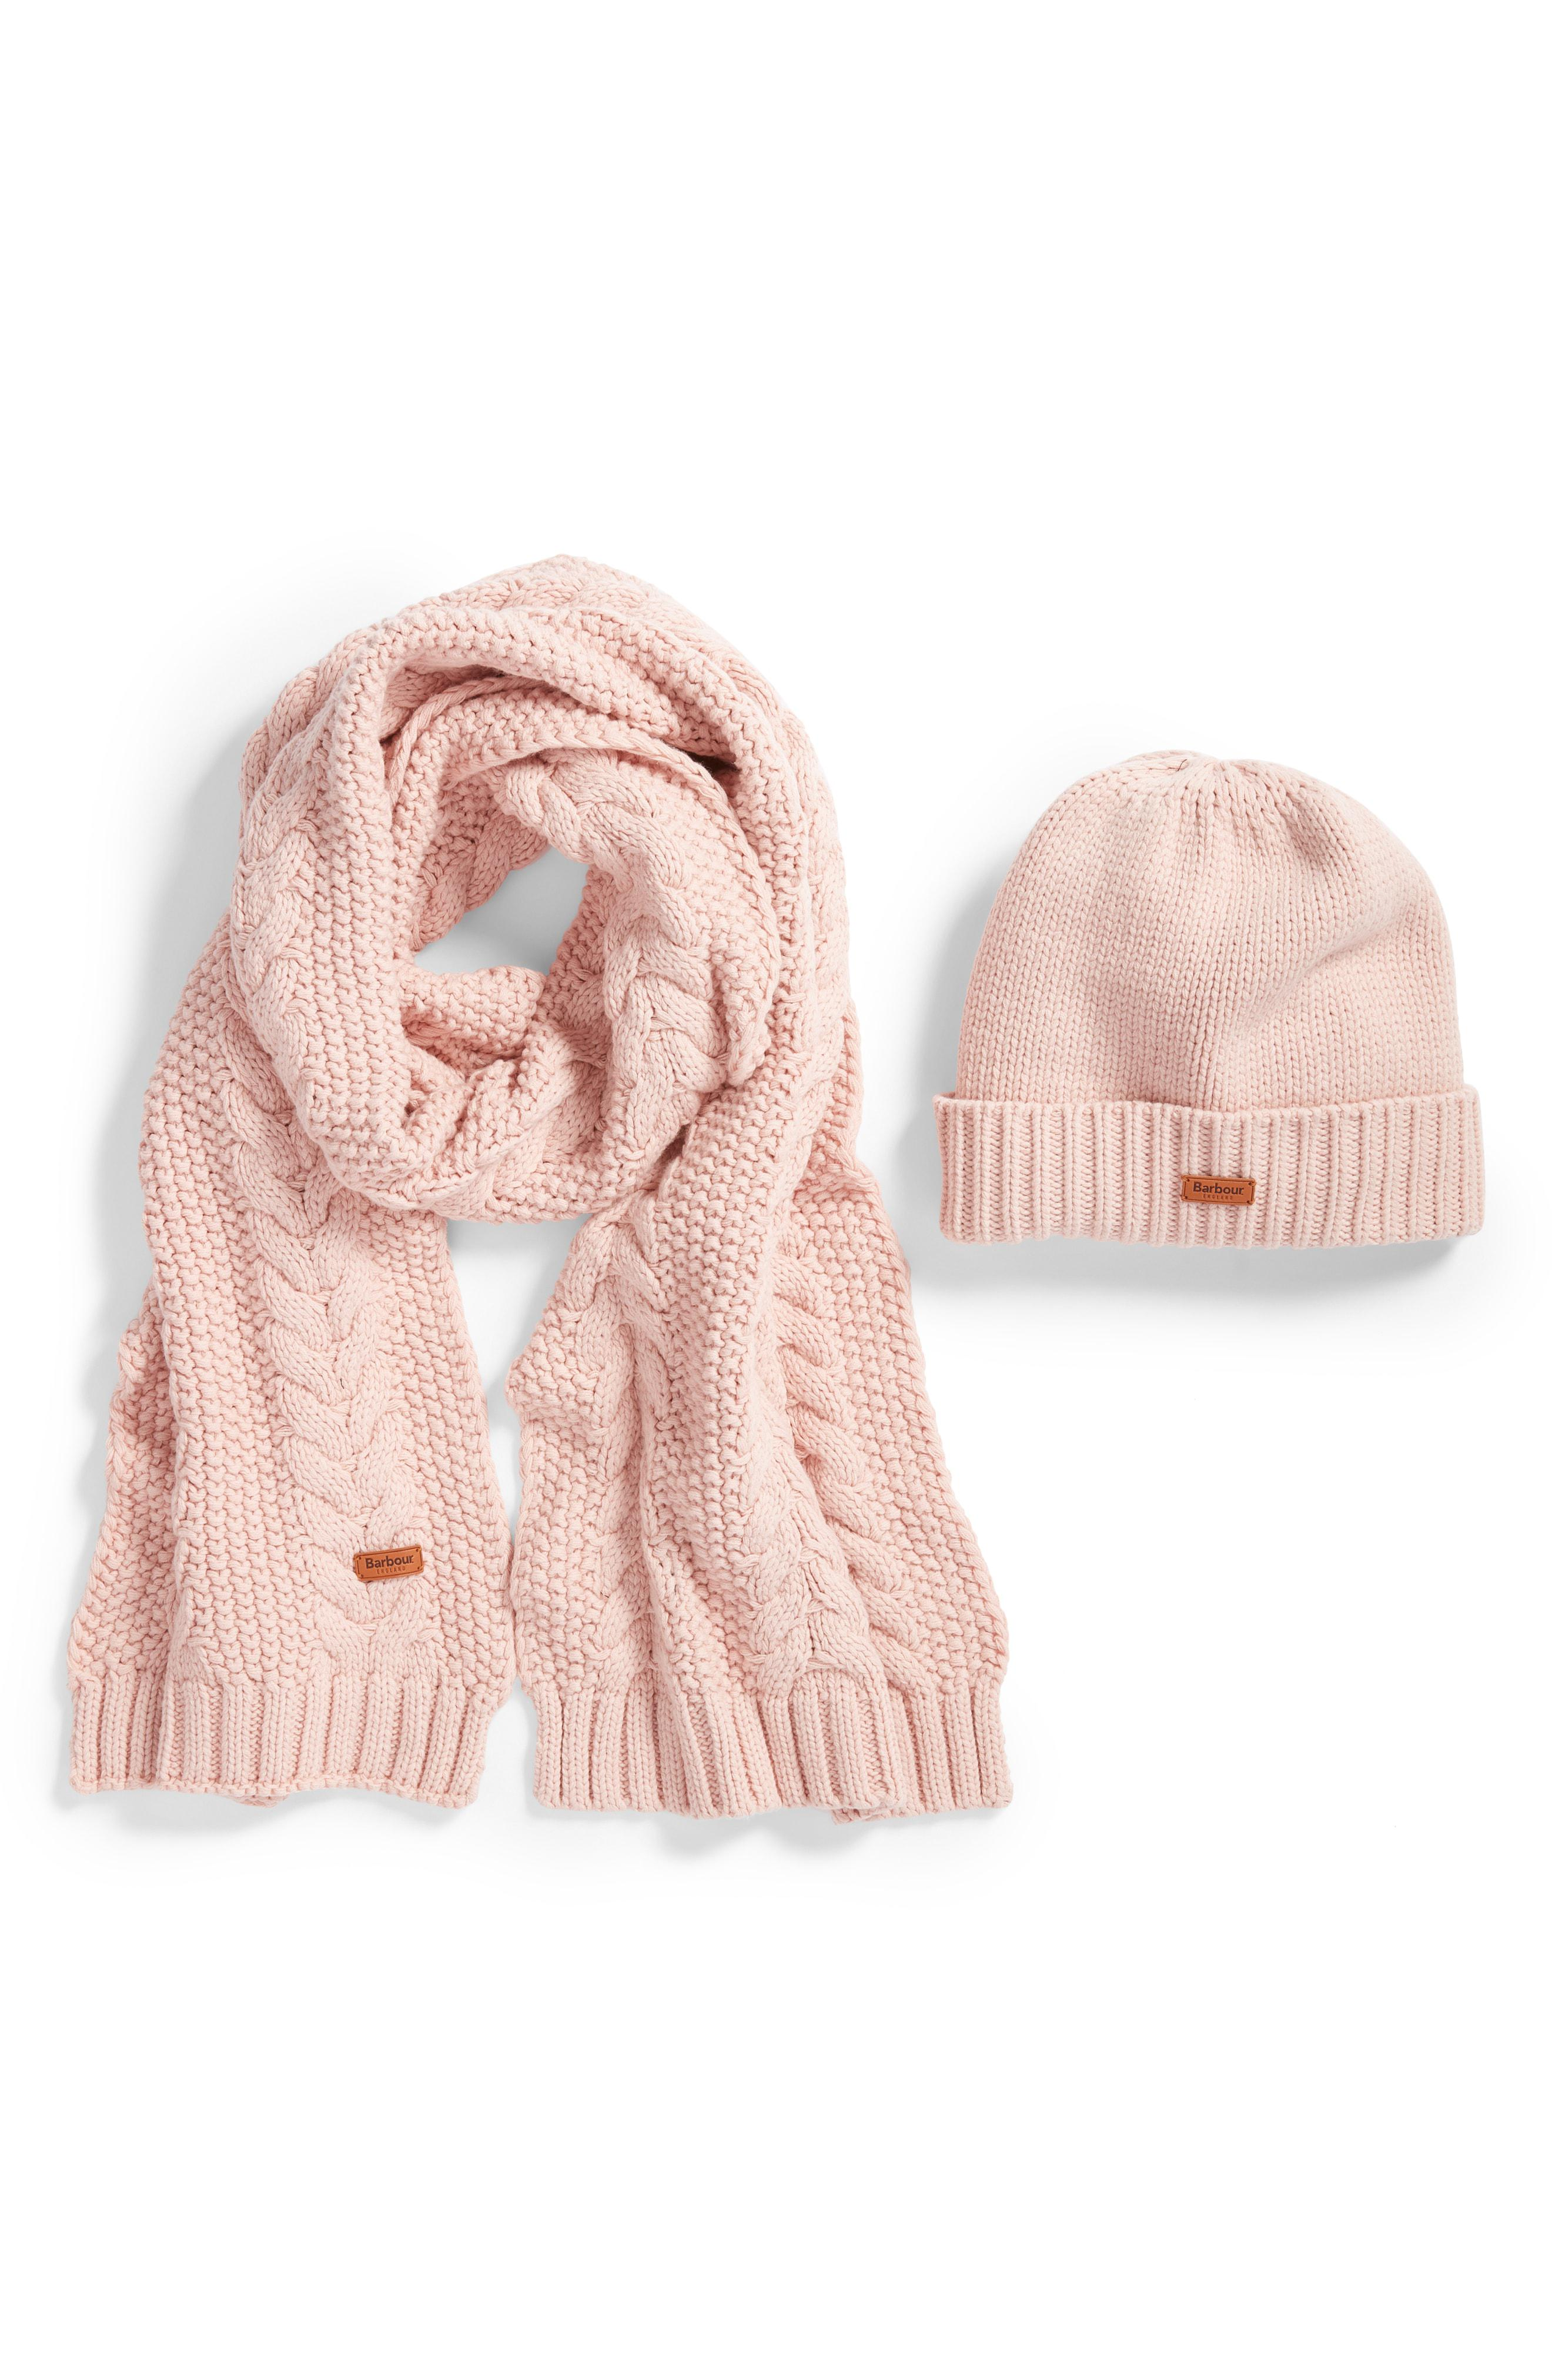 Barbour - Pink Cable Knit Hat   Scarf Set - - Lyst. View fullscreen 0d6efbb6daa6